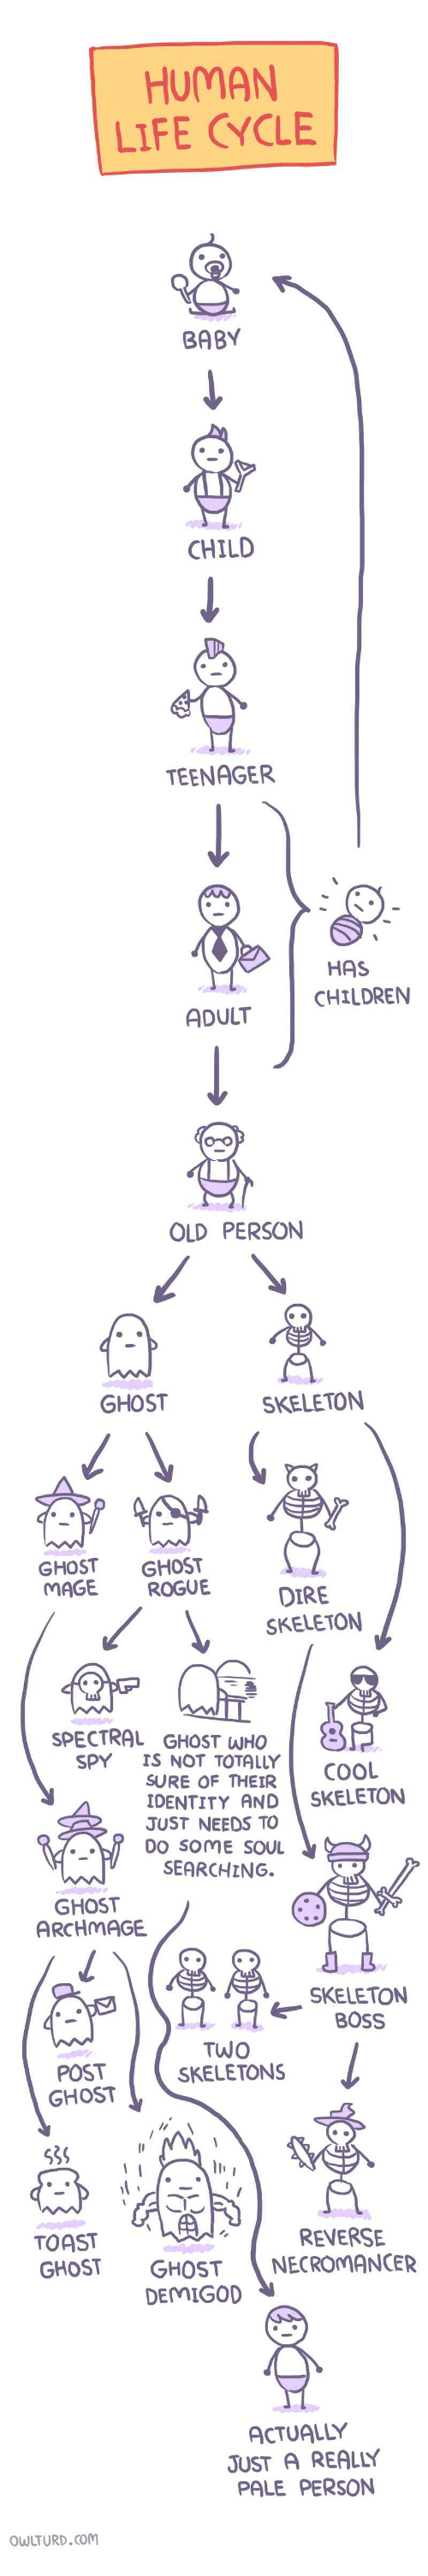 Ghost Ghost